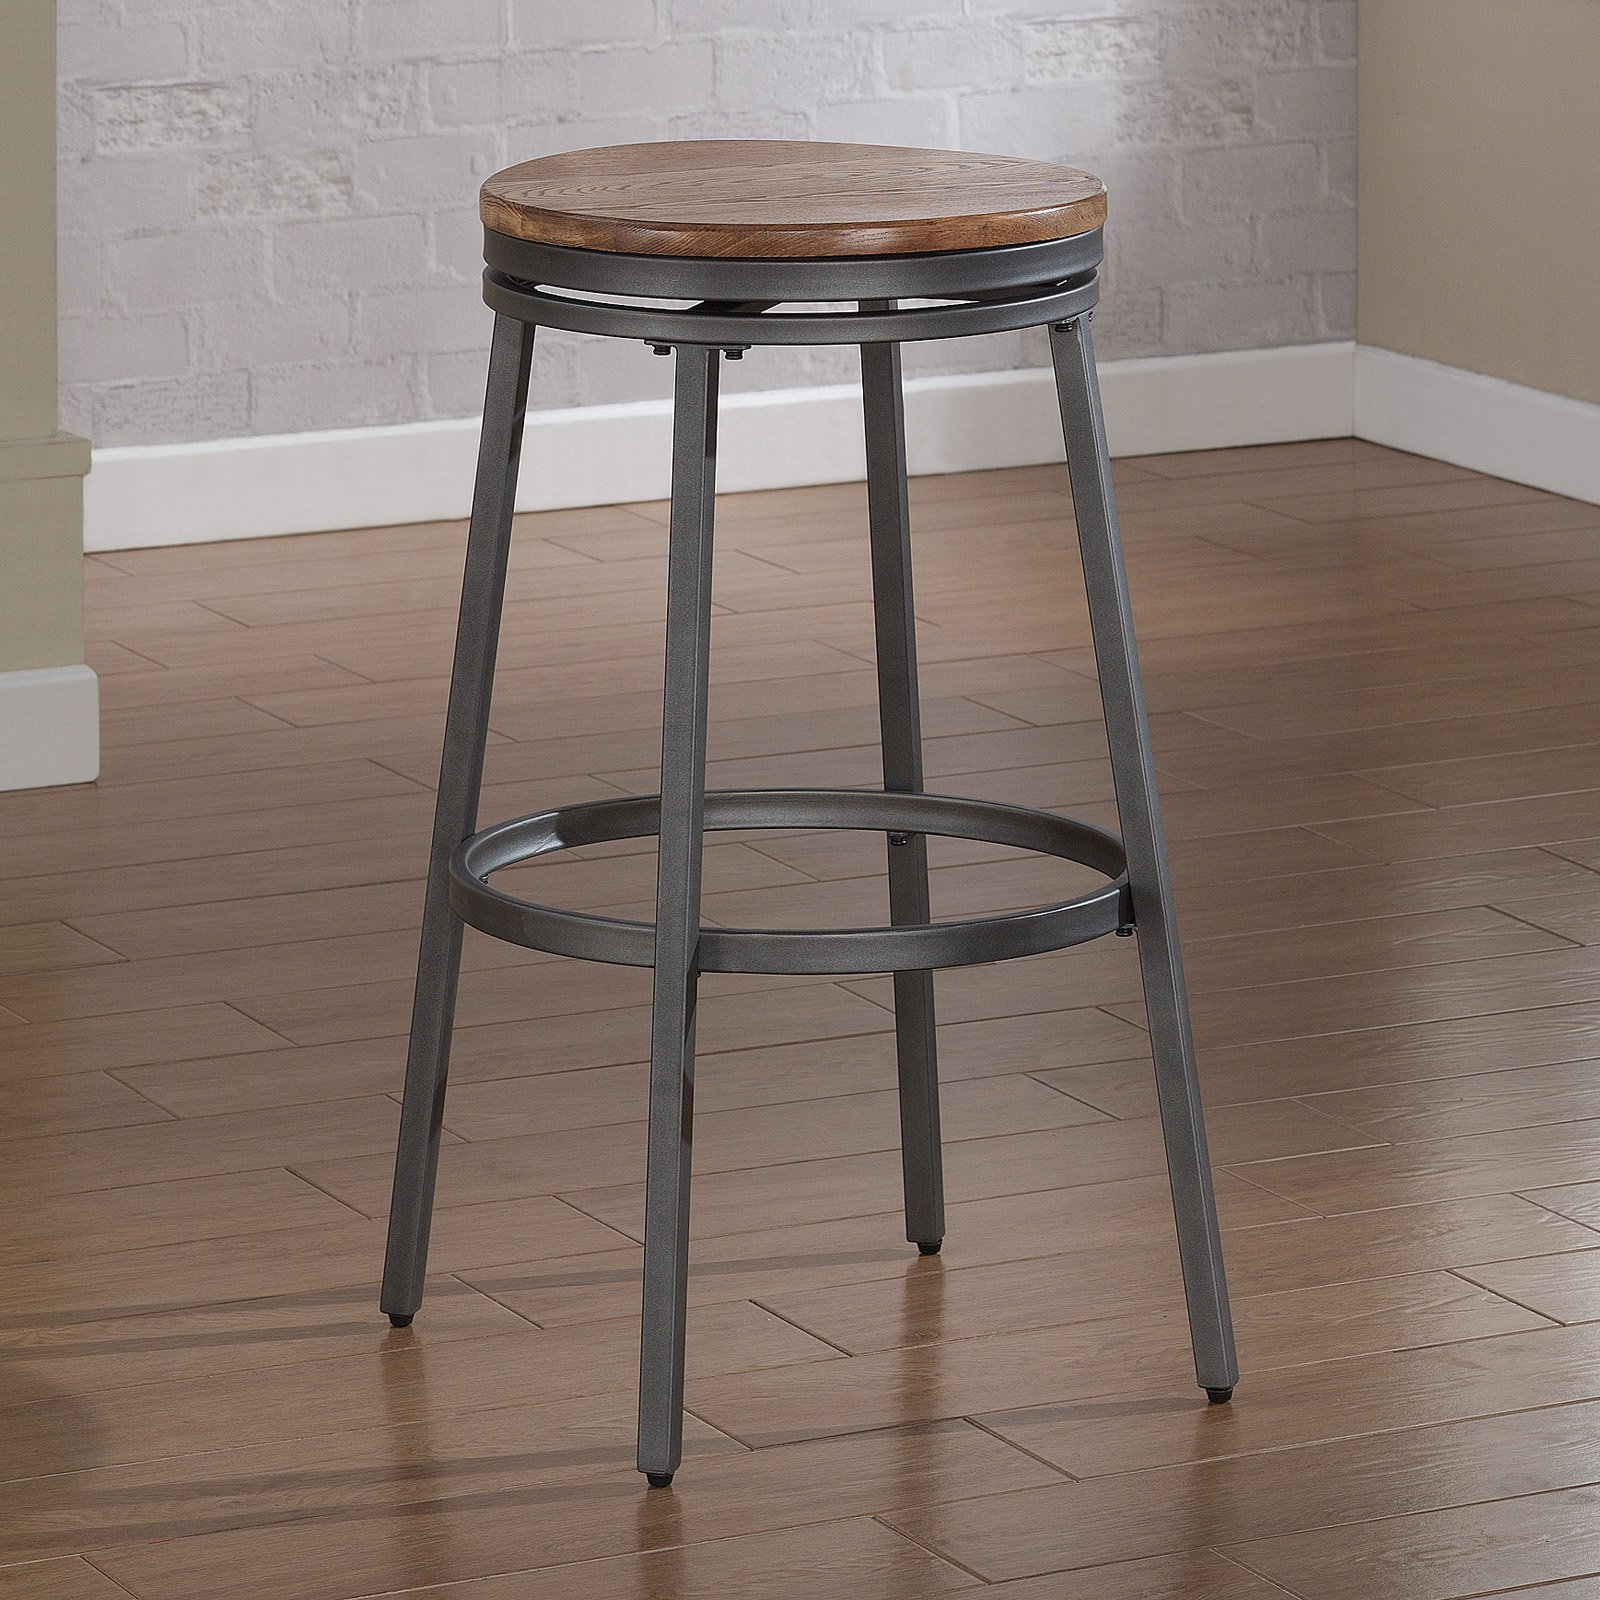 American Woodcrafters Stockton Backless Bar Stool - Slate Gray/Golden Oak